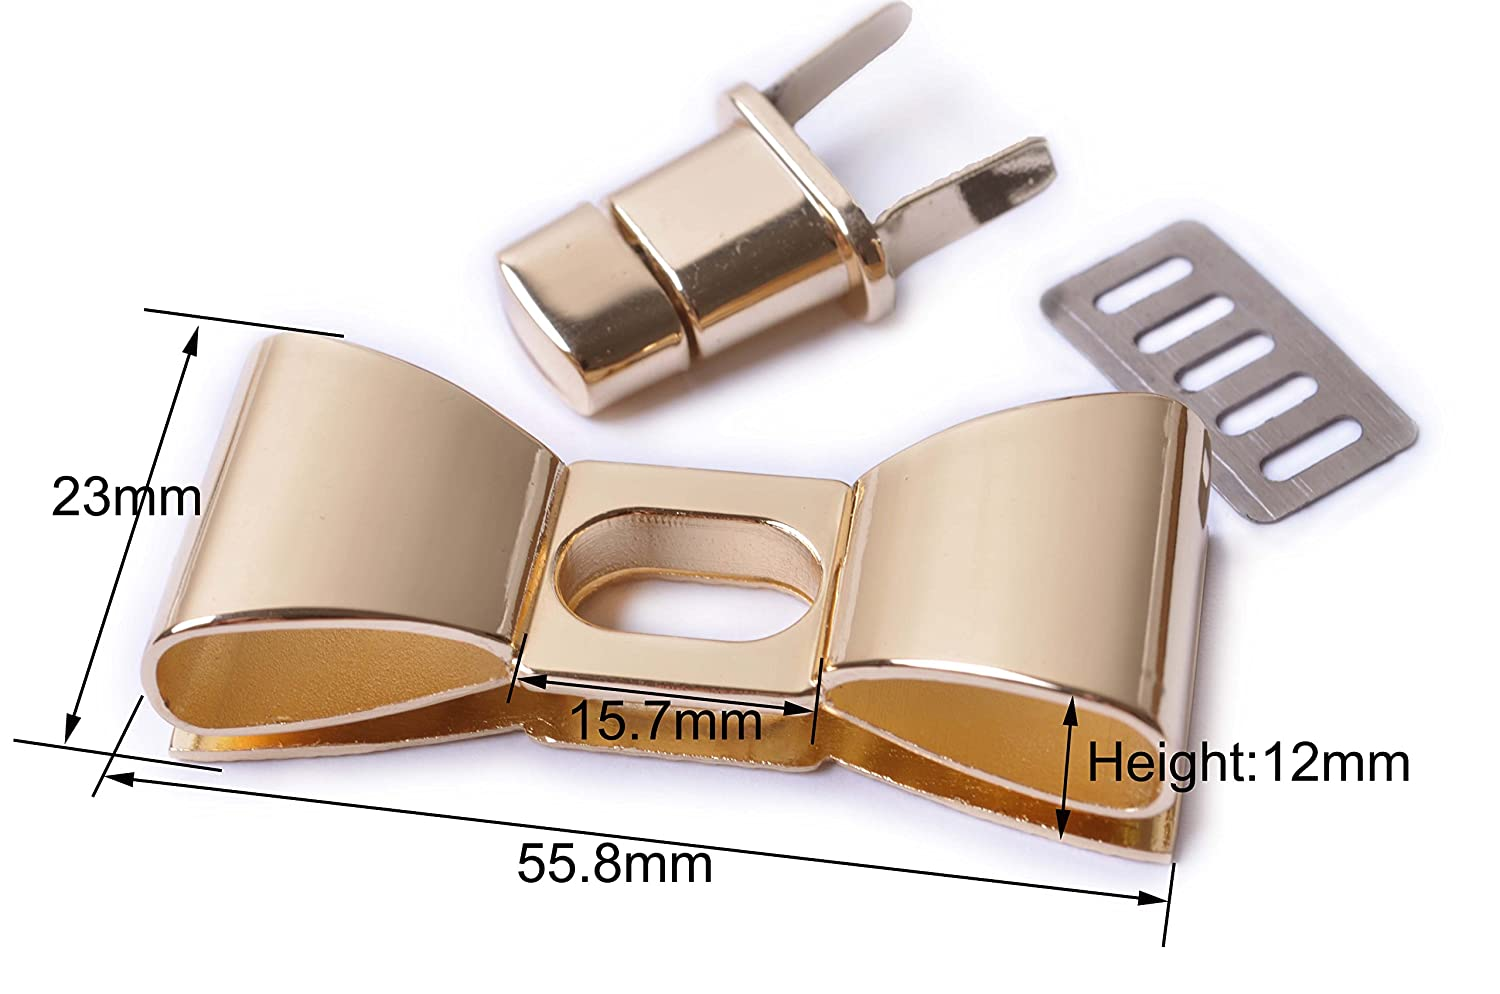 Bobeey 2sets 55x23mm Classy Light Gold Bowknot Purses Locks Clutches Closures,Metal Bow Shape Twist Locks Purse Closure Turn Locks BBL5